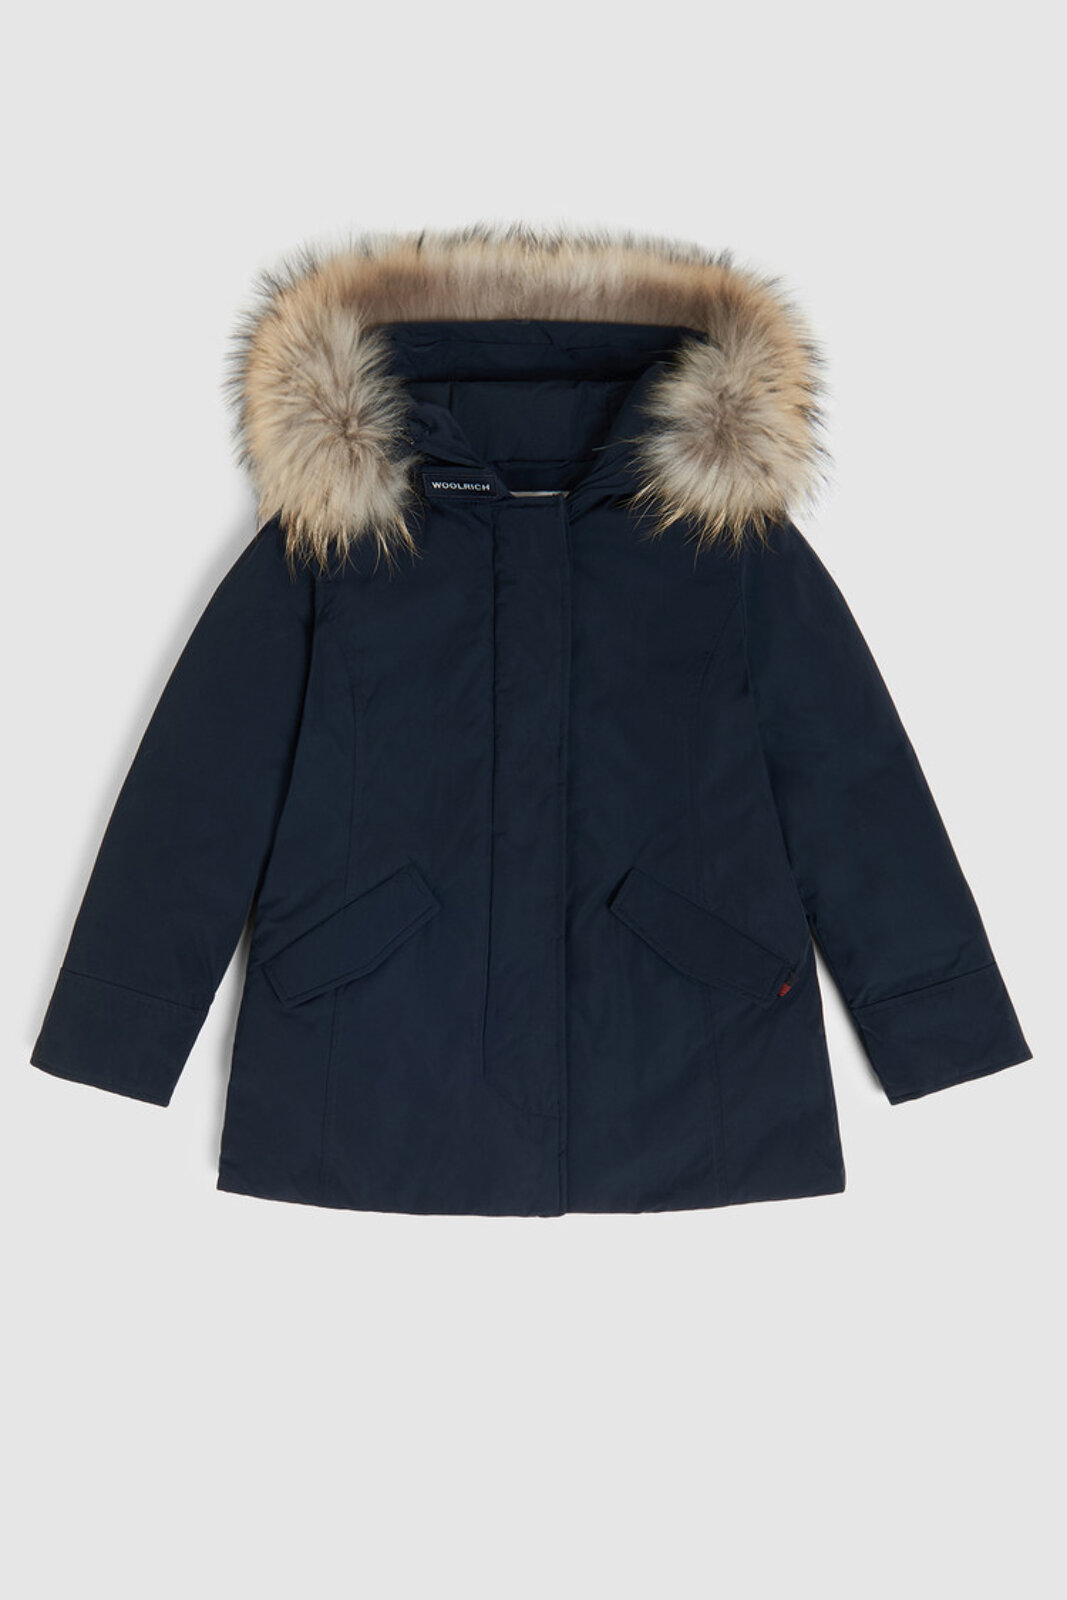 Arctic Parka Luxury - Woolrich Junior